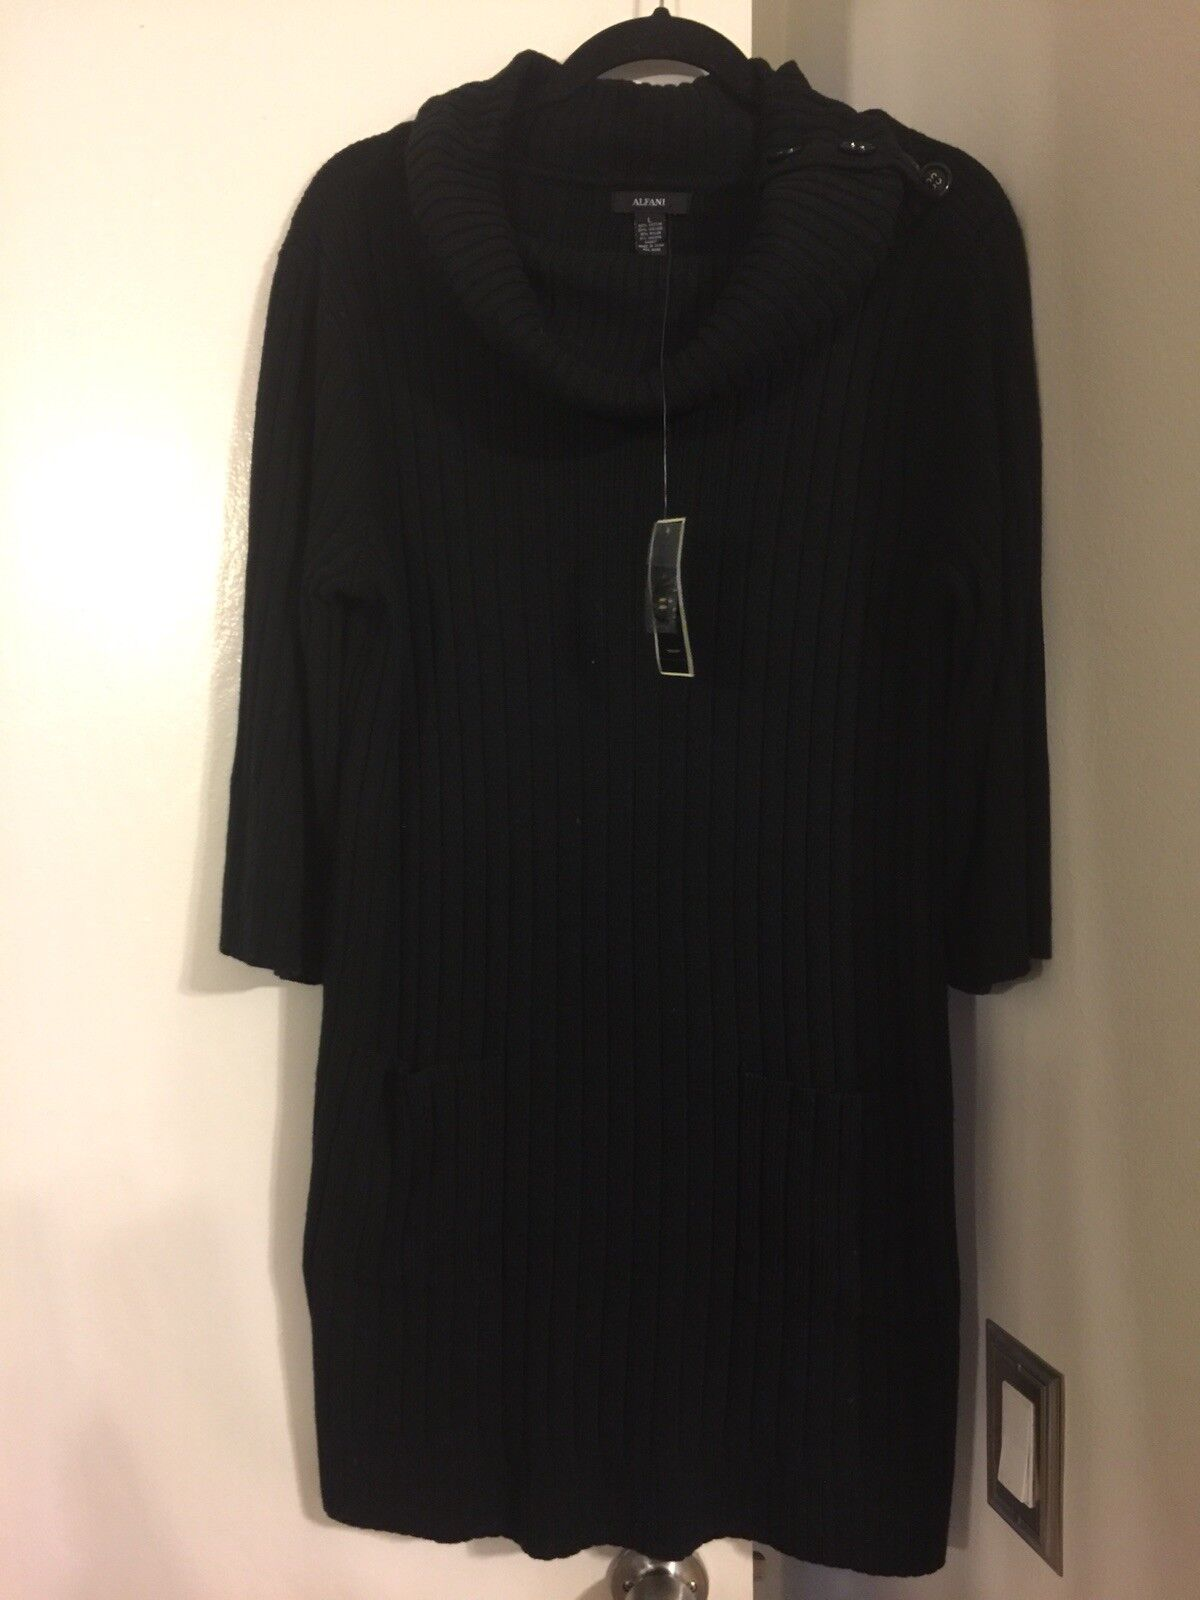 Alfani schwarz Sweater Dress damen Größe Large New With Tags